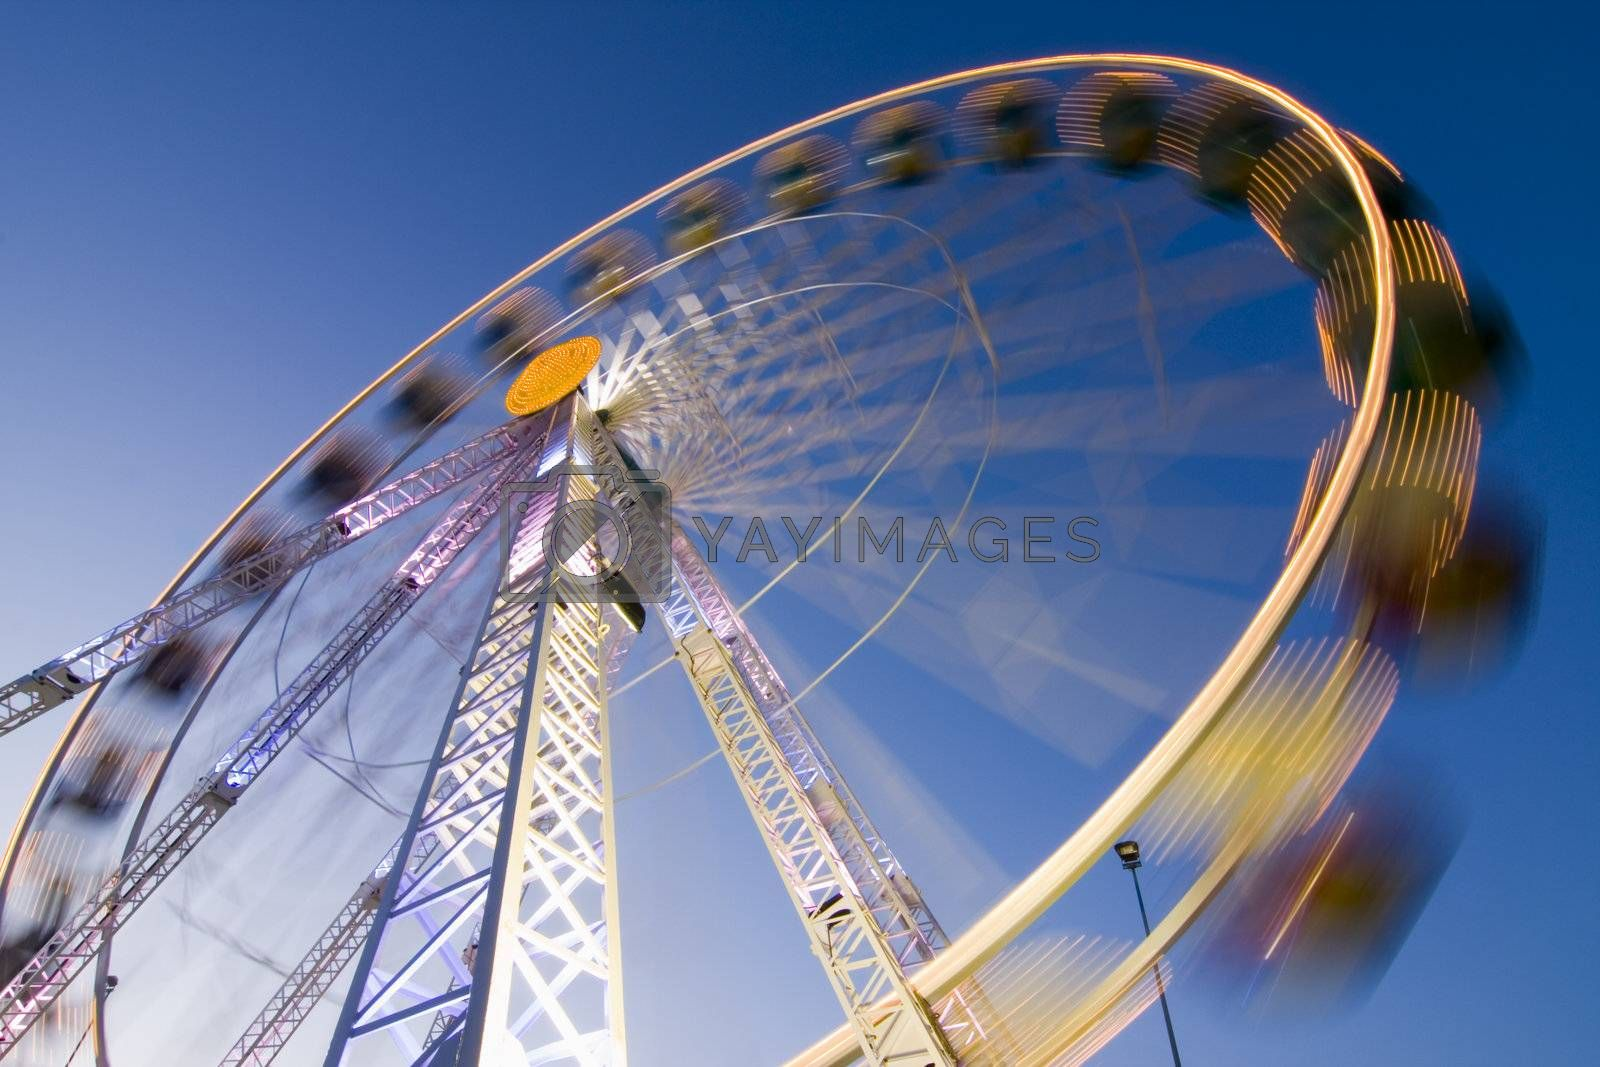 Big wheel on a fun fair with colorful lights. Motion blurred. Long exposure time with tripod.